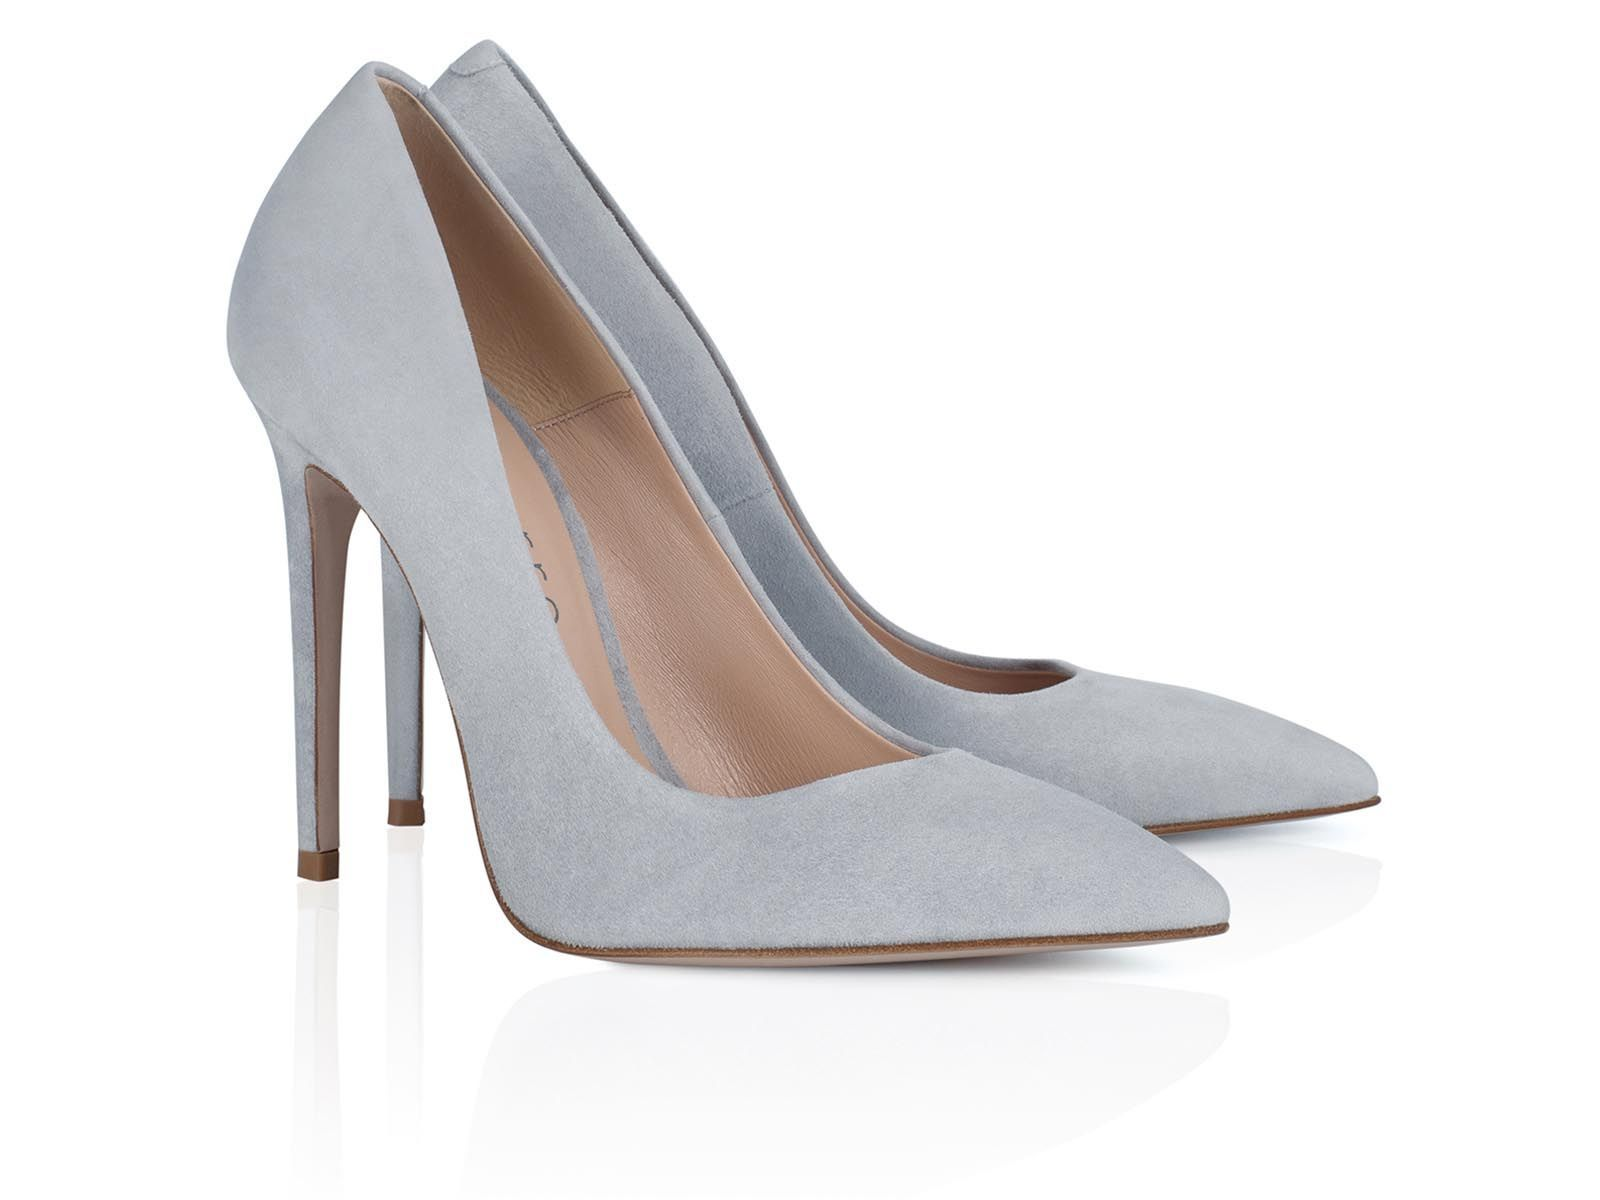 grey suede leather pumps 100mm hight of heel - Montorro Luxury Handmade Italian Shoes